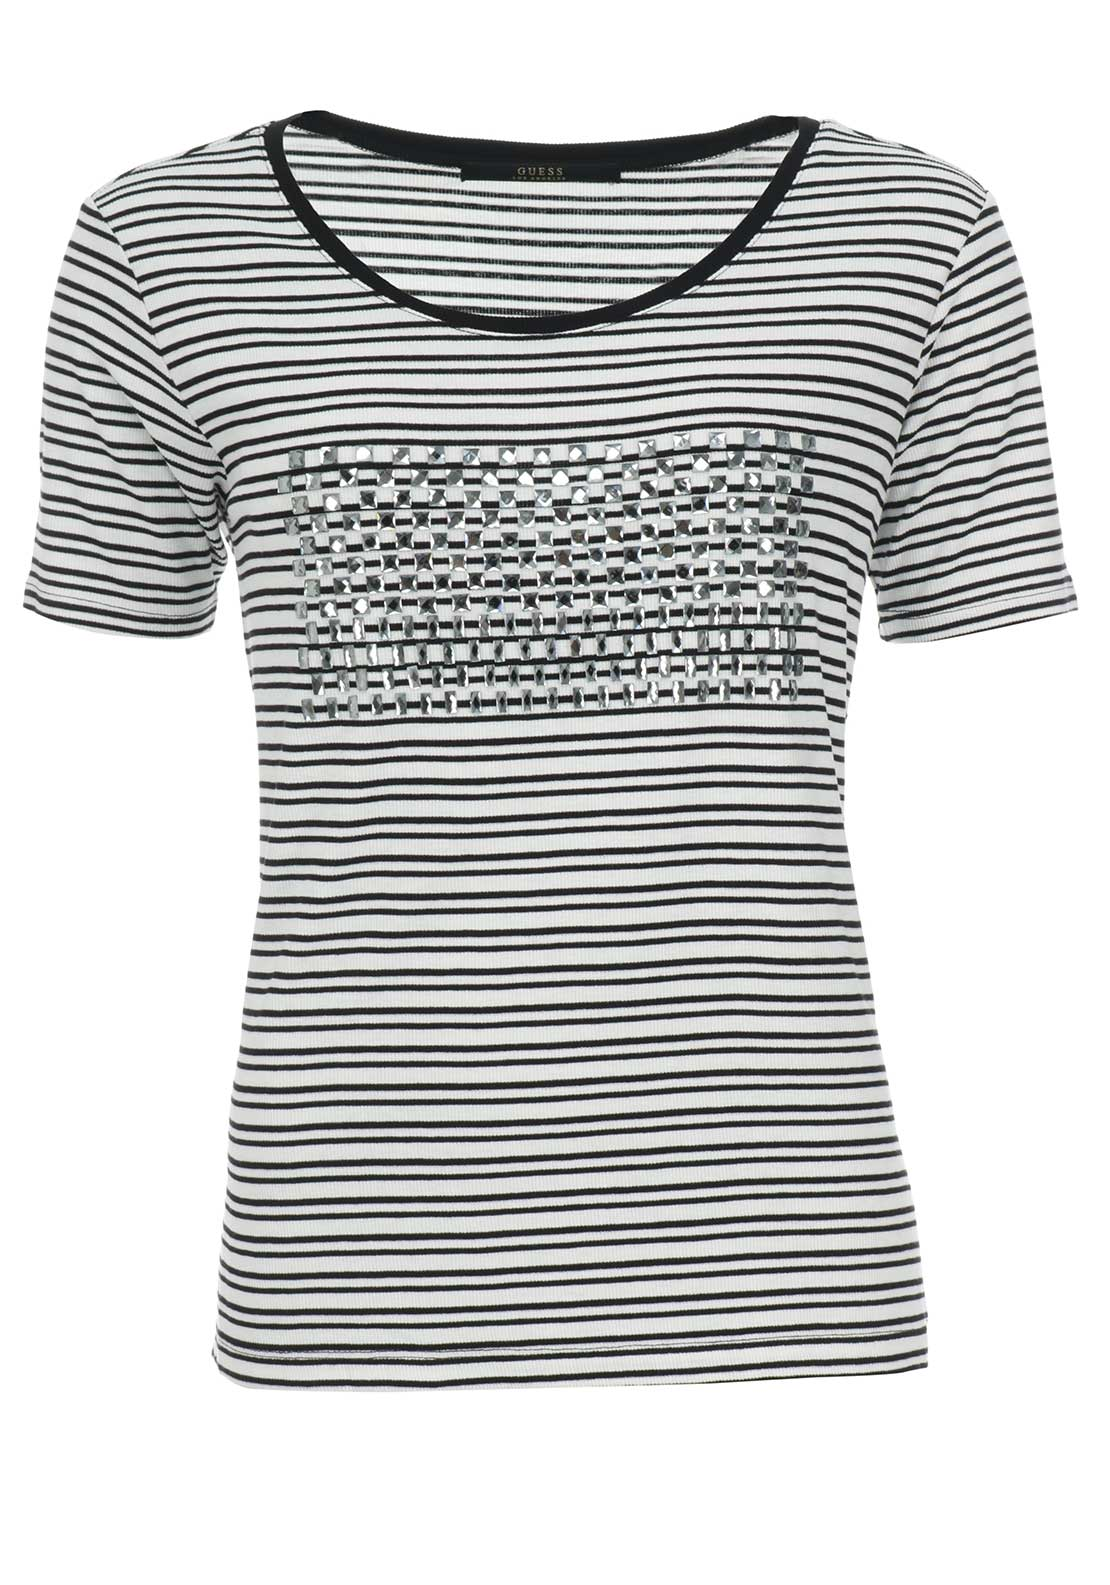 Guess Womens Amelia Diamante Striped Top, Black